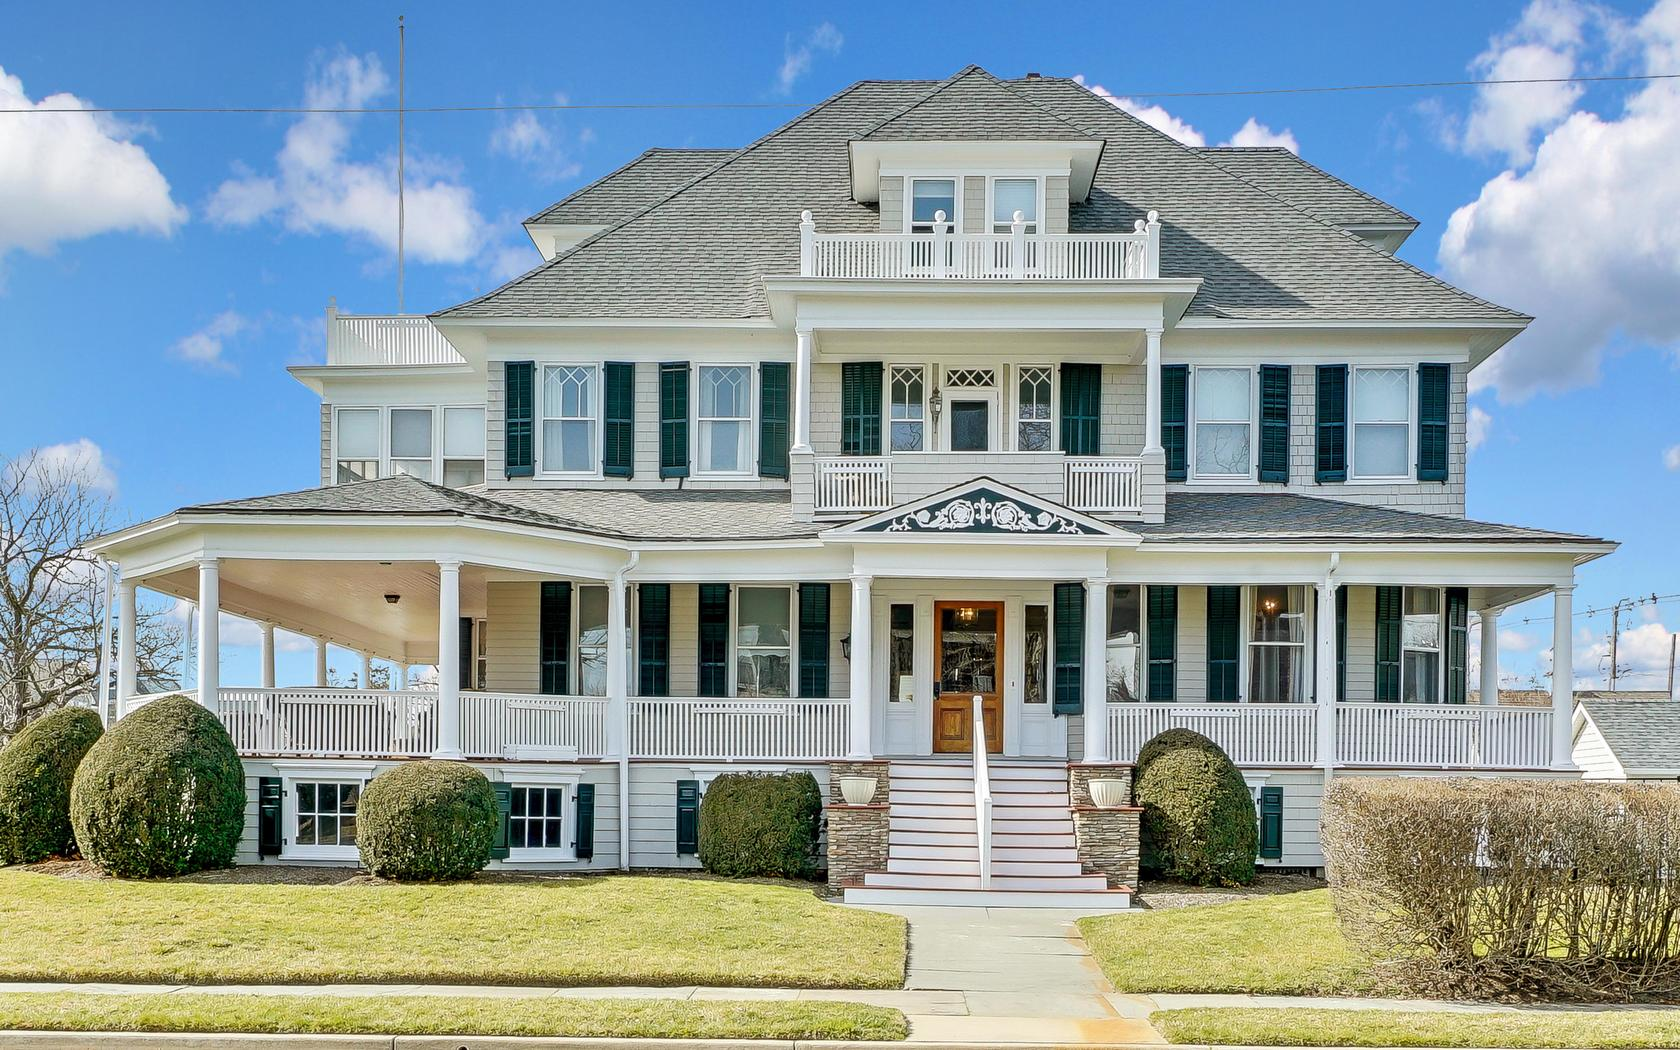 Single Family Home for Sale at Luxurious Avon Colonial 302 Garfield Avenue Avon By The Sea, New Jersey, 07717 United States